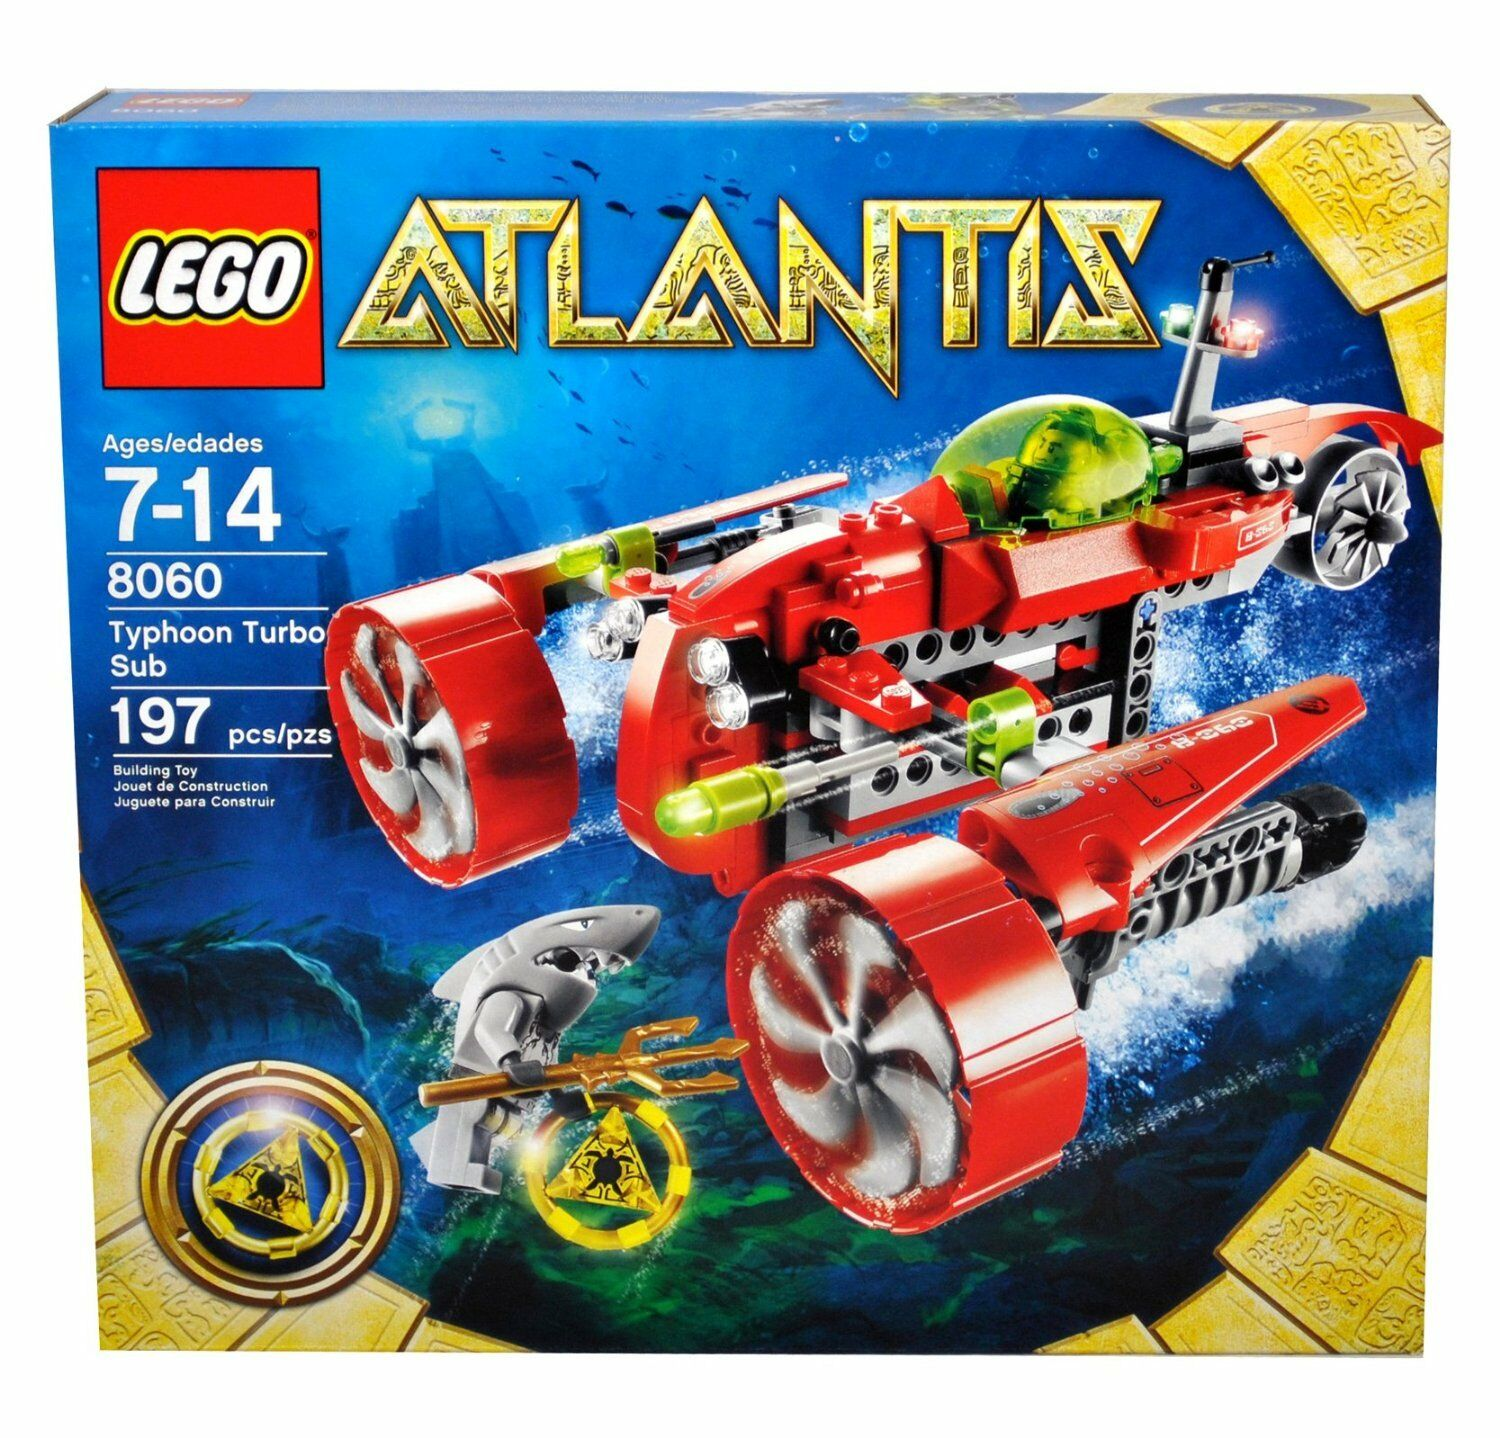 NEW IN SEALED BOX - LEGO ATLANTIS Typhoon Turbo Sub 8060 / 197 pieces